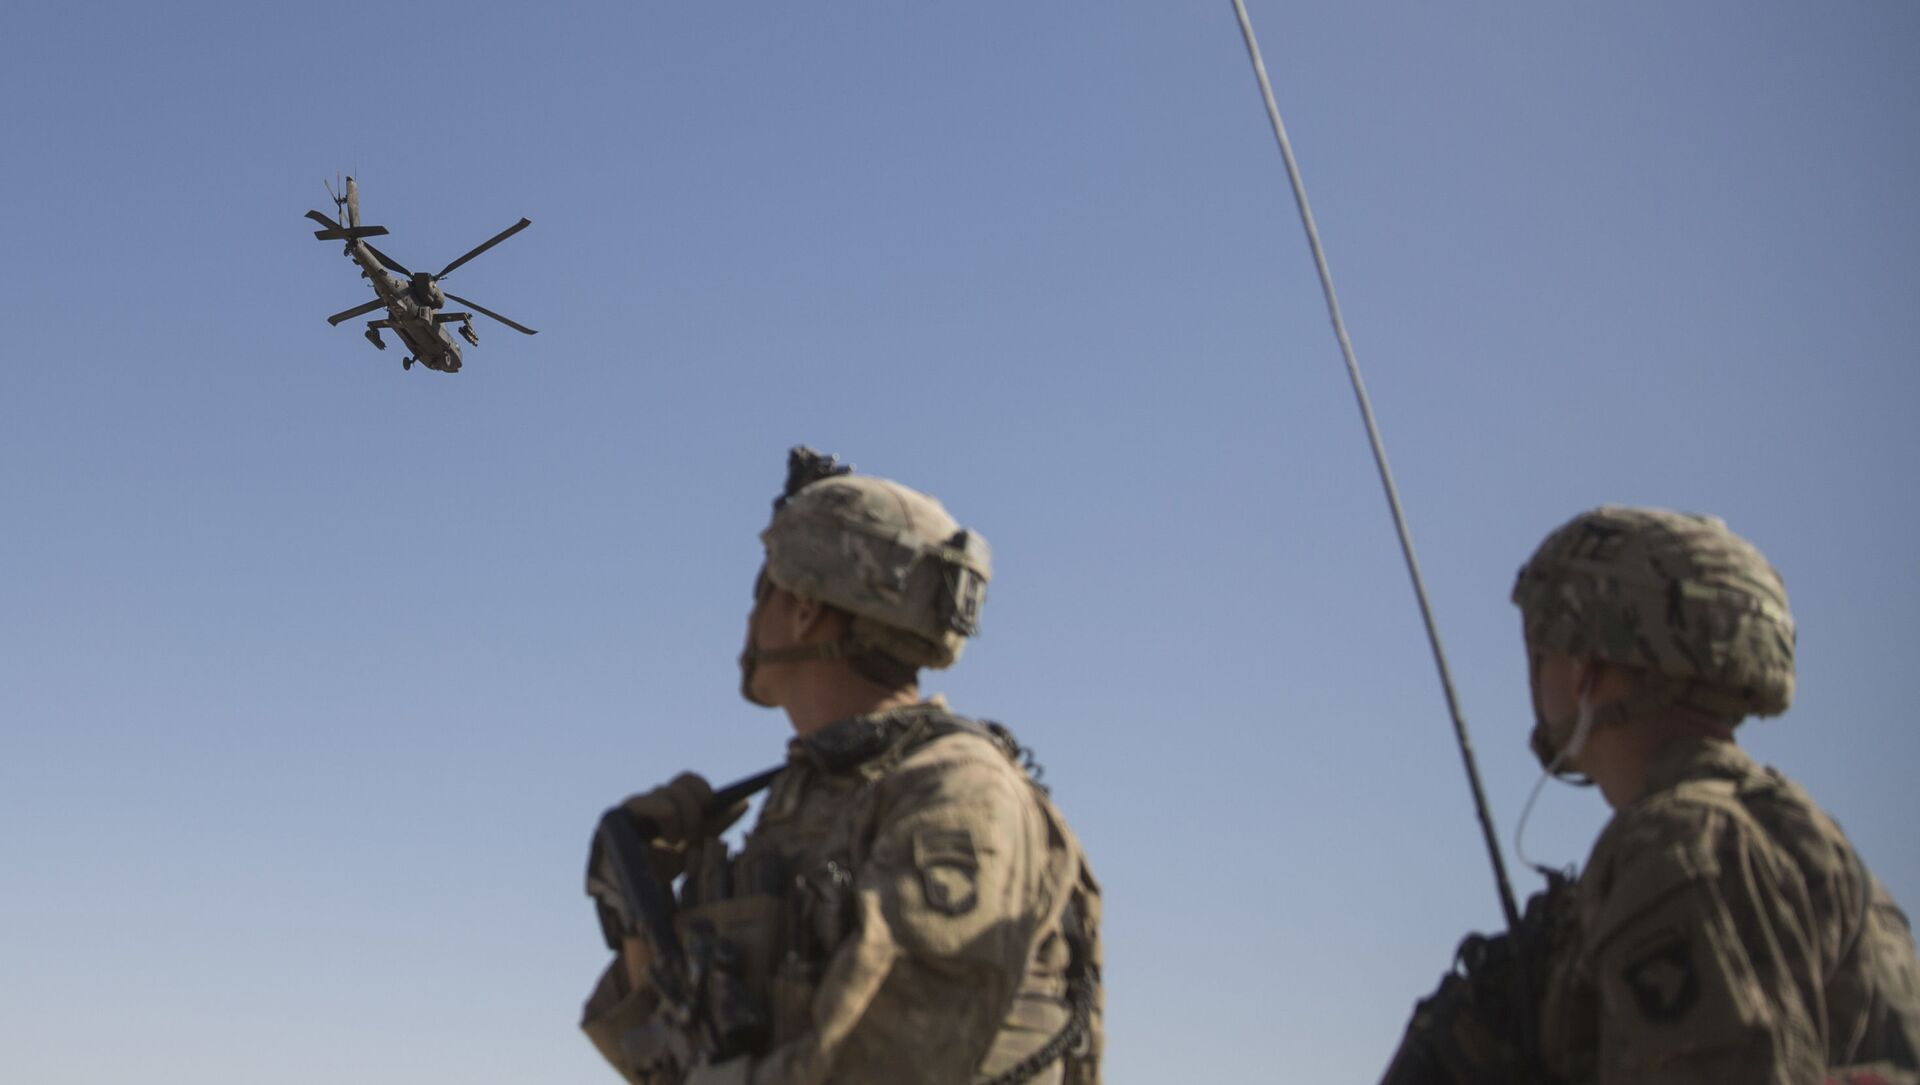 This June 10, 2017 photo released by the U.S. Marine Corps shows an AH-64 Apache attack helicopter provides security from above while CH-47 Chinooks drop off supplies to U.S. Soldiers with Task Force Iron at Bost Airfield, Afghanistan. - Sputnik International, 1920, 19.06.2021